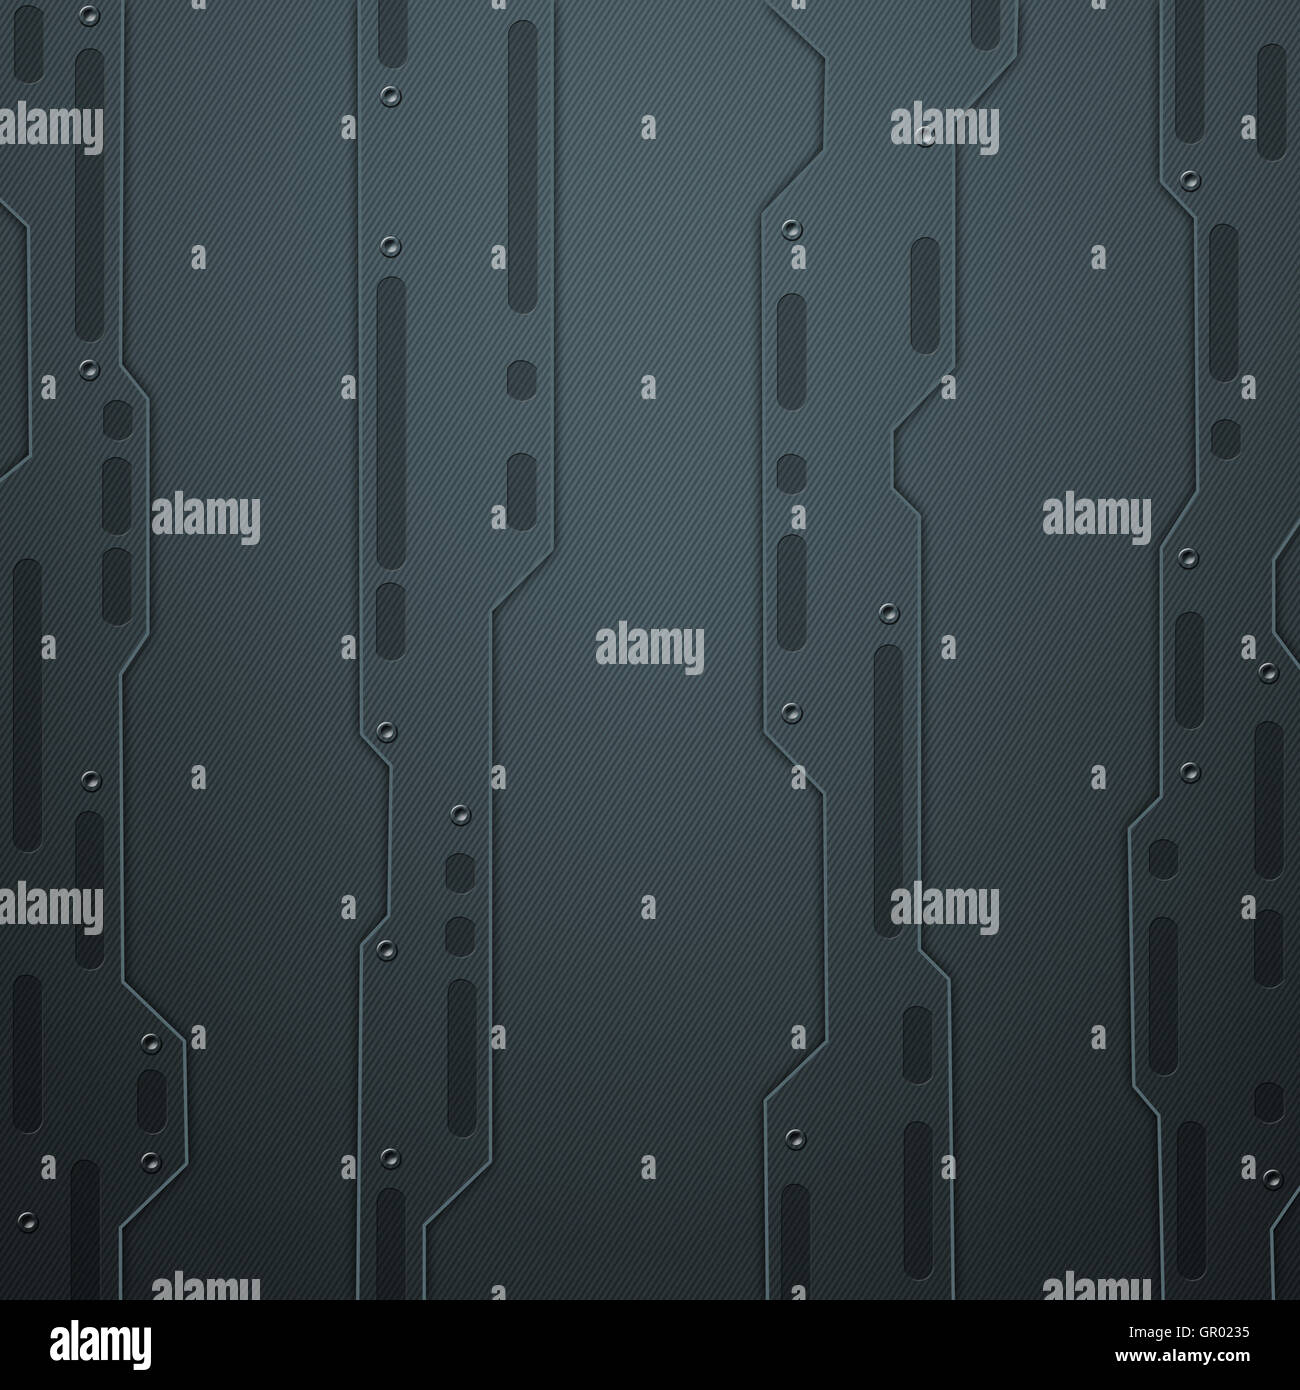 scifi wall. black carbon fiber wall. metal background and texture 3d illustration. technology concept. - Stock Image